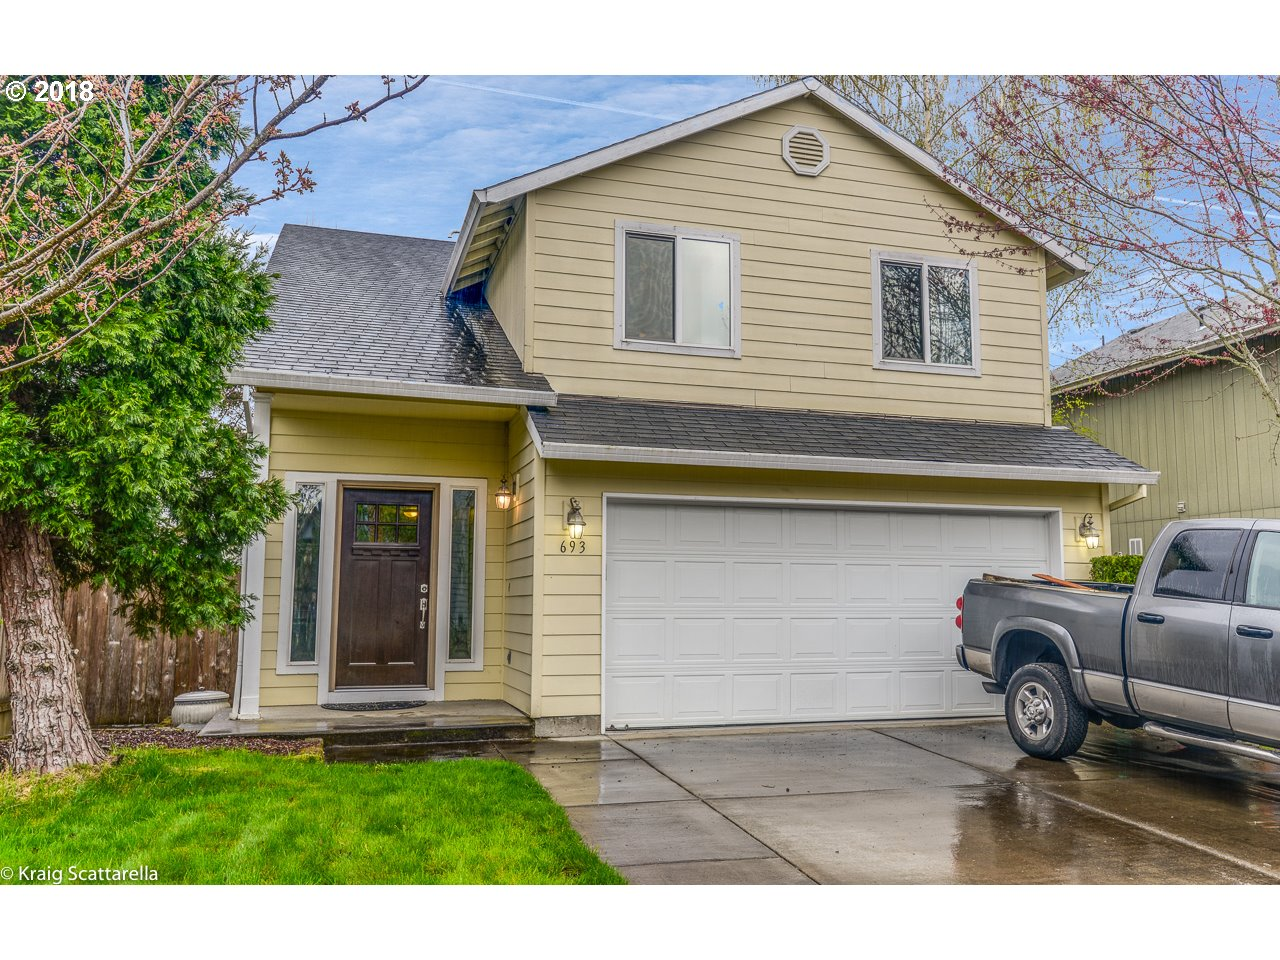 1634 sq. ft 3 bedrooms 2 bathrooms  House For Sale, Gresham, OR